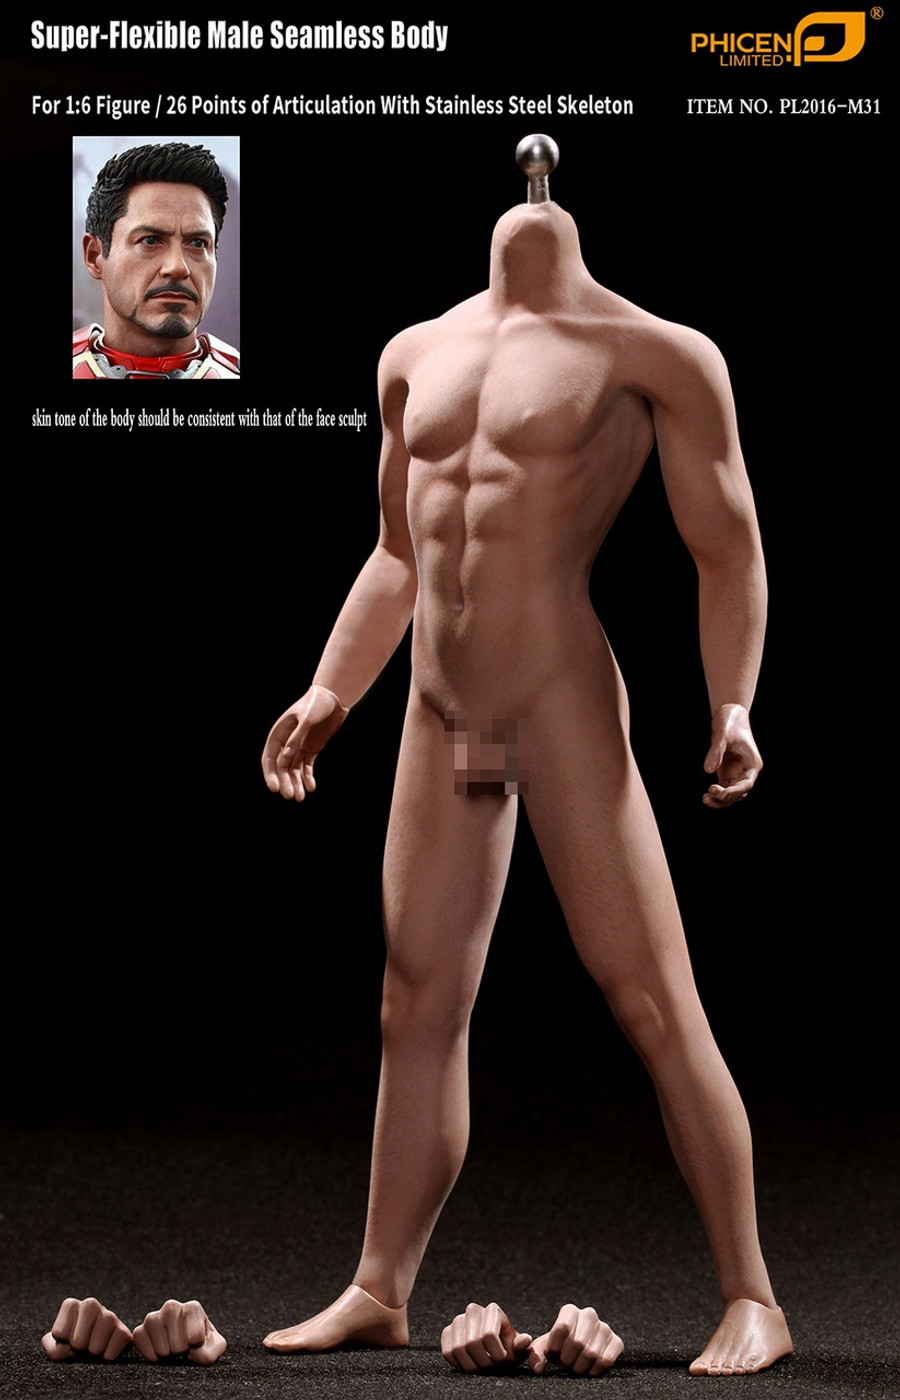 Phicen - Super-Flexible Male Seamless Body - Tall M31